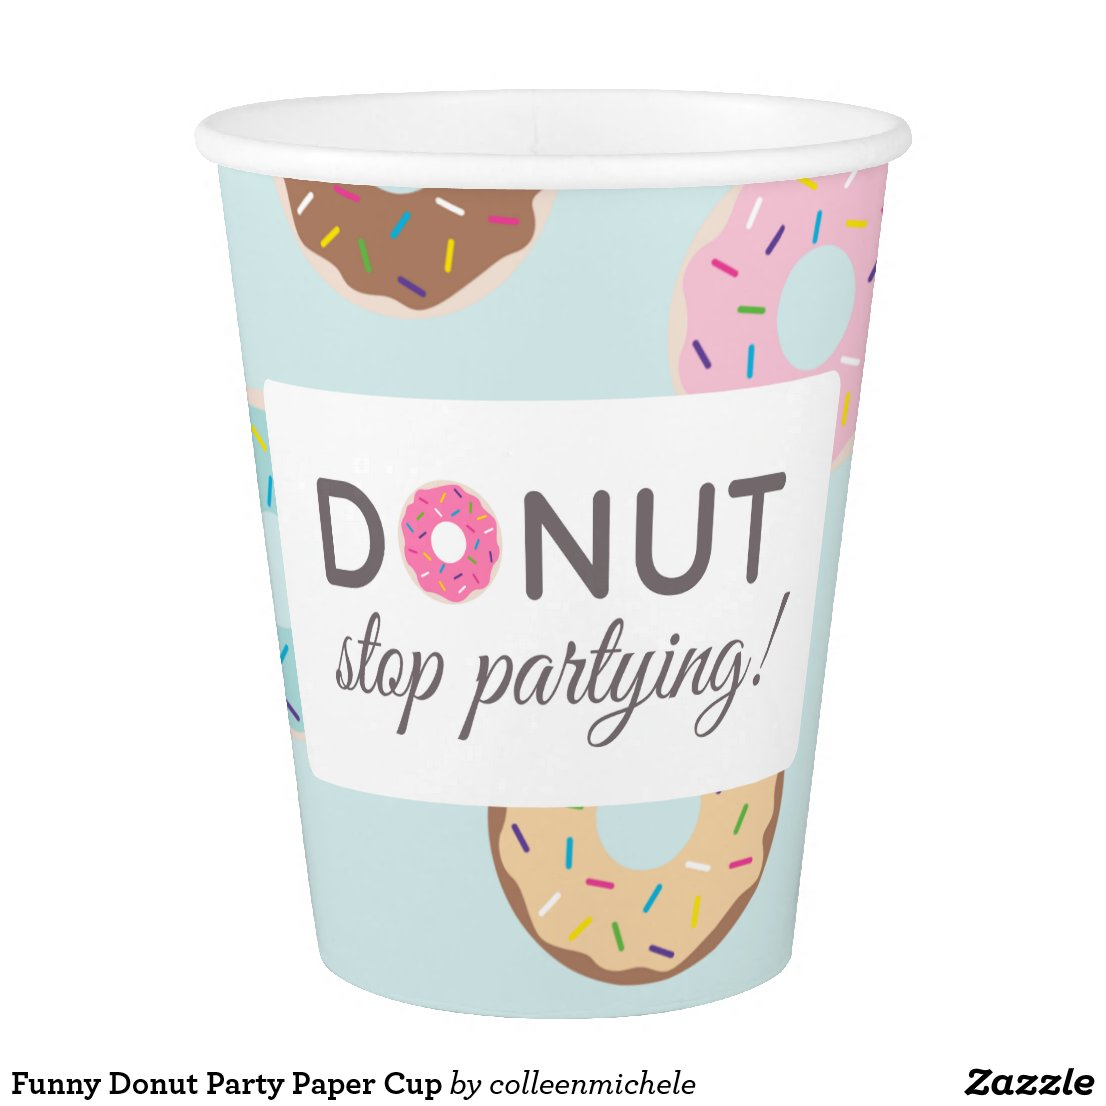 Funny Donut Party Paper Cup